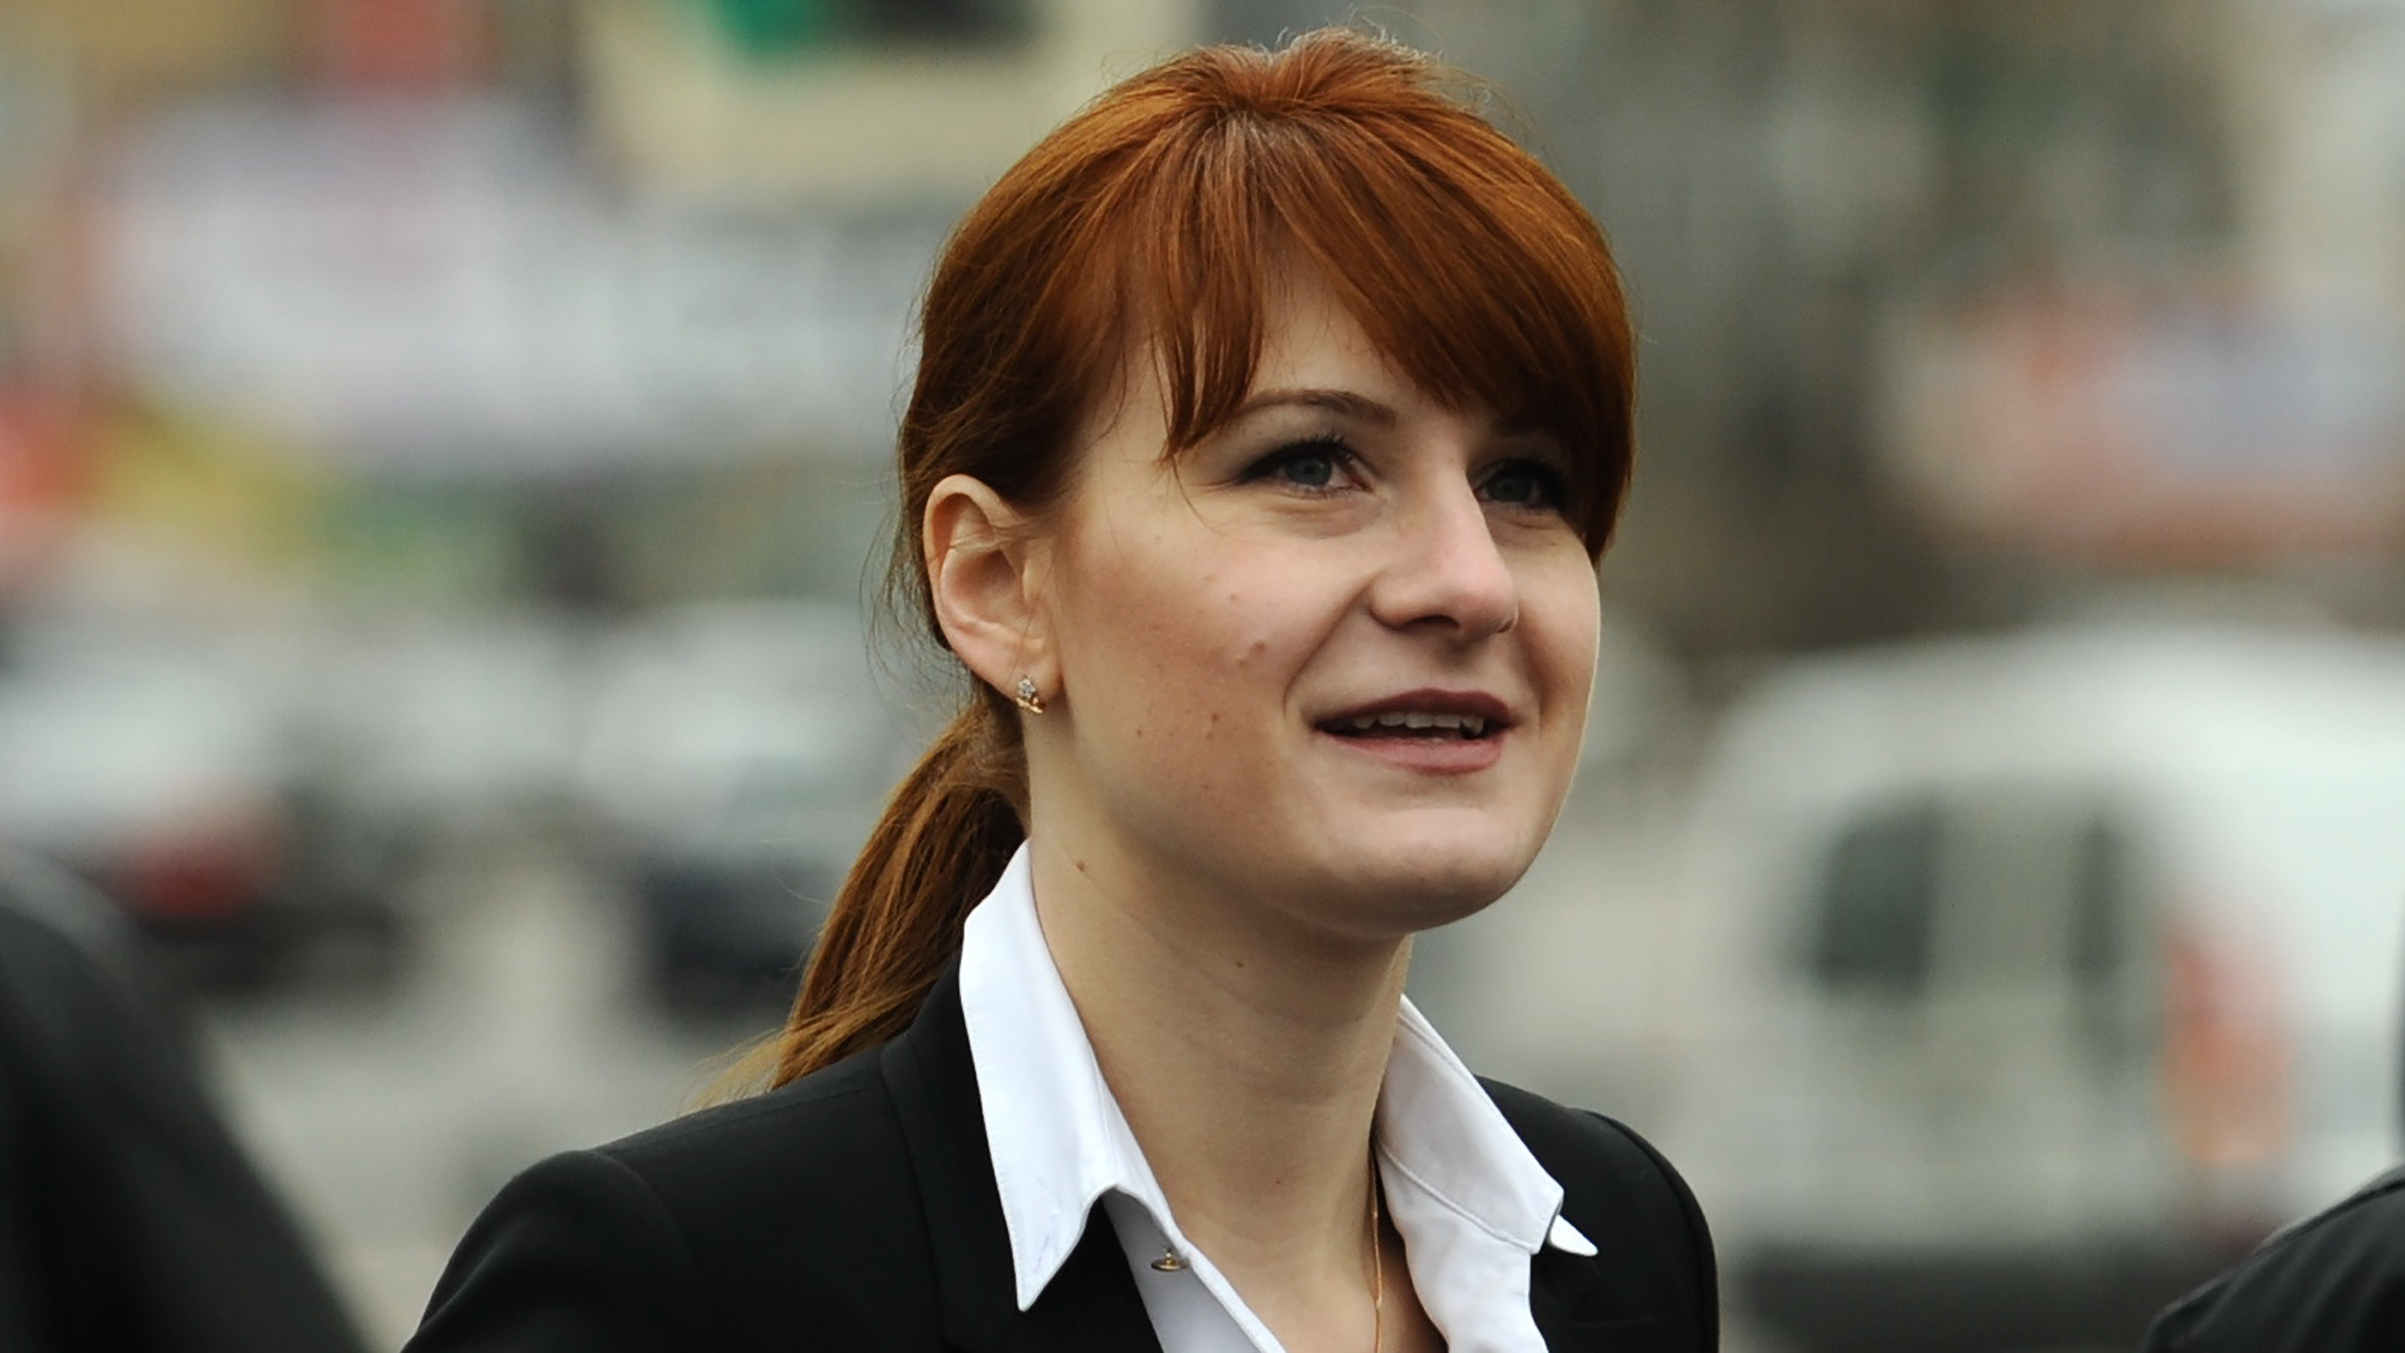 Maria Butina attends a rally at Krasnopresnenskaya Zastava Square in support of legalizing the possession of handguns, April 21, 2013.